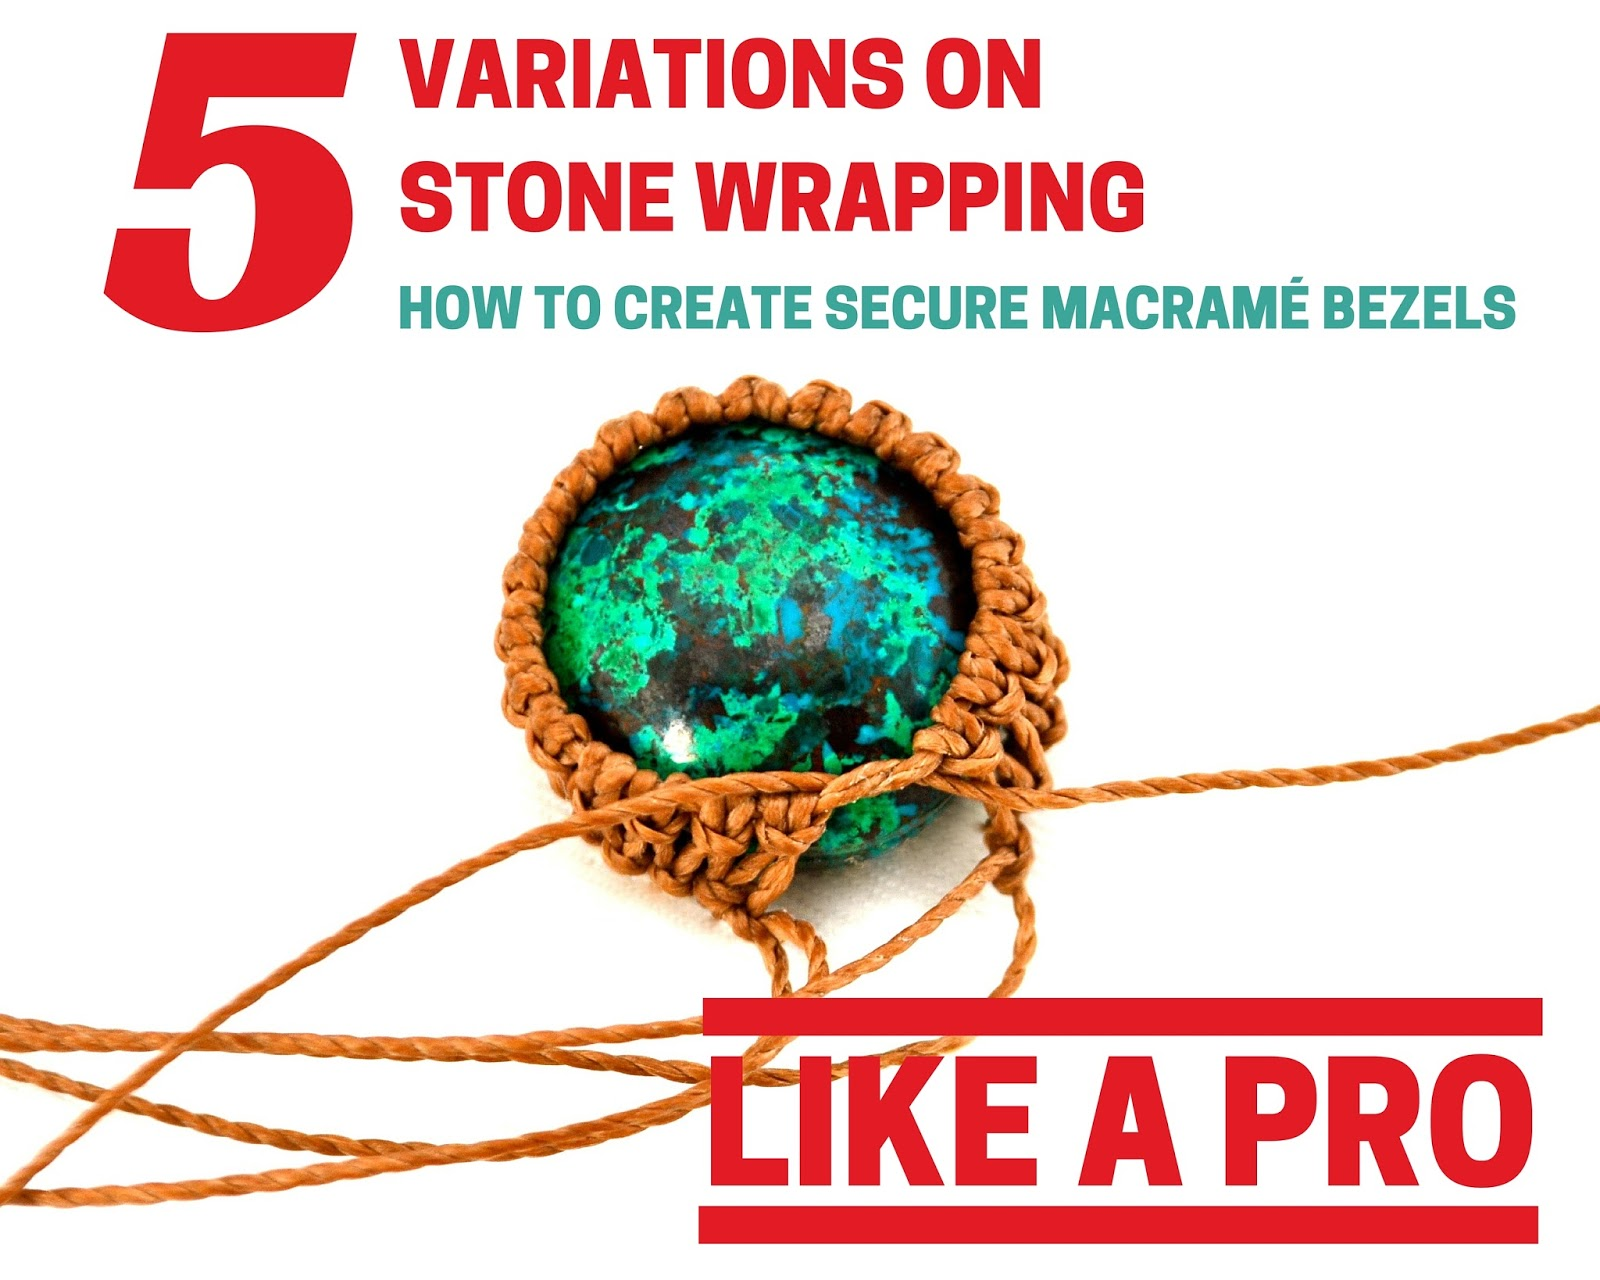 Rumi sumaqs giveaway for 5 macrame stone wrapping tutorials the rumi sumaqs giveaway for 5 macrame stone wrapping tutorials baditri Images